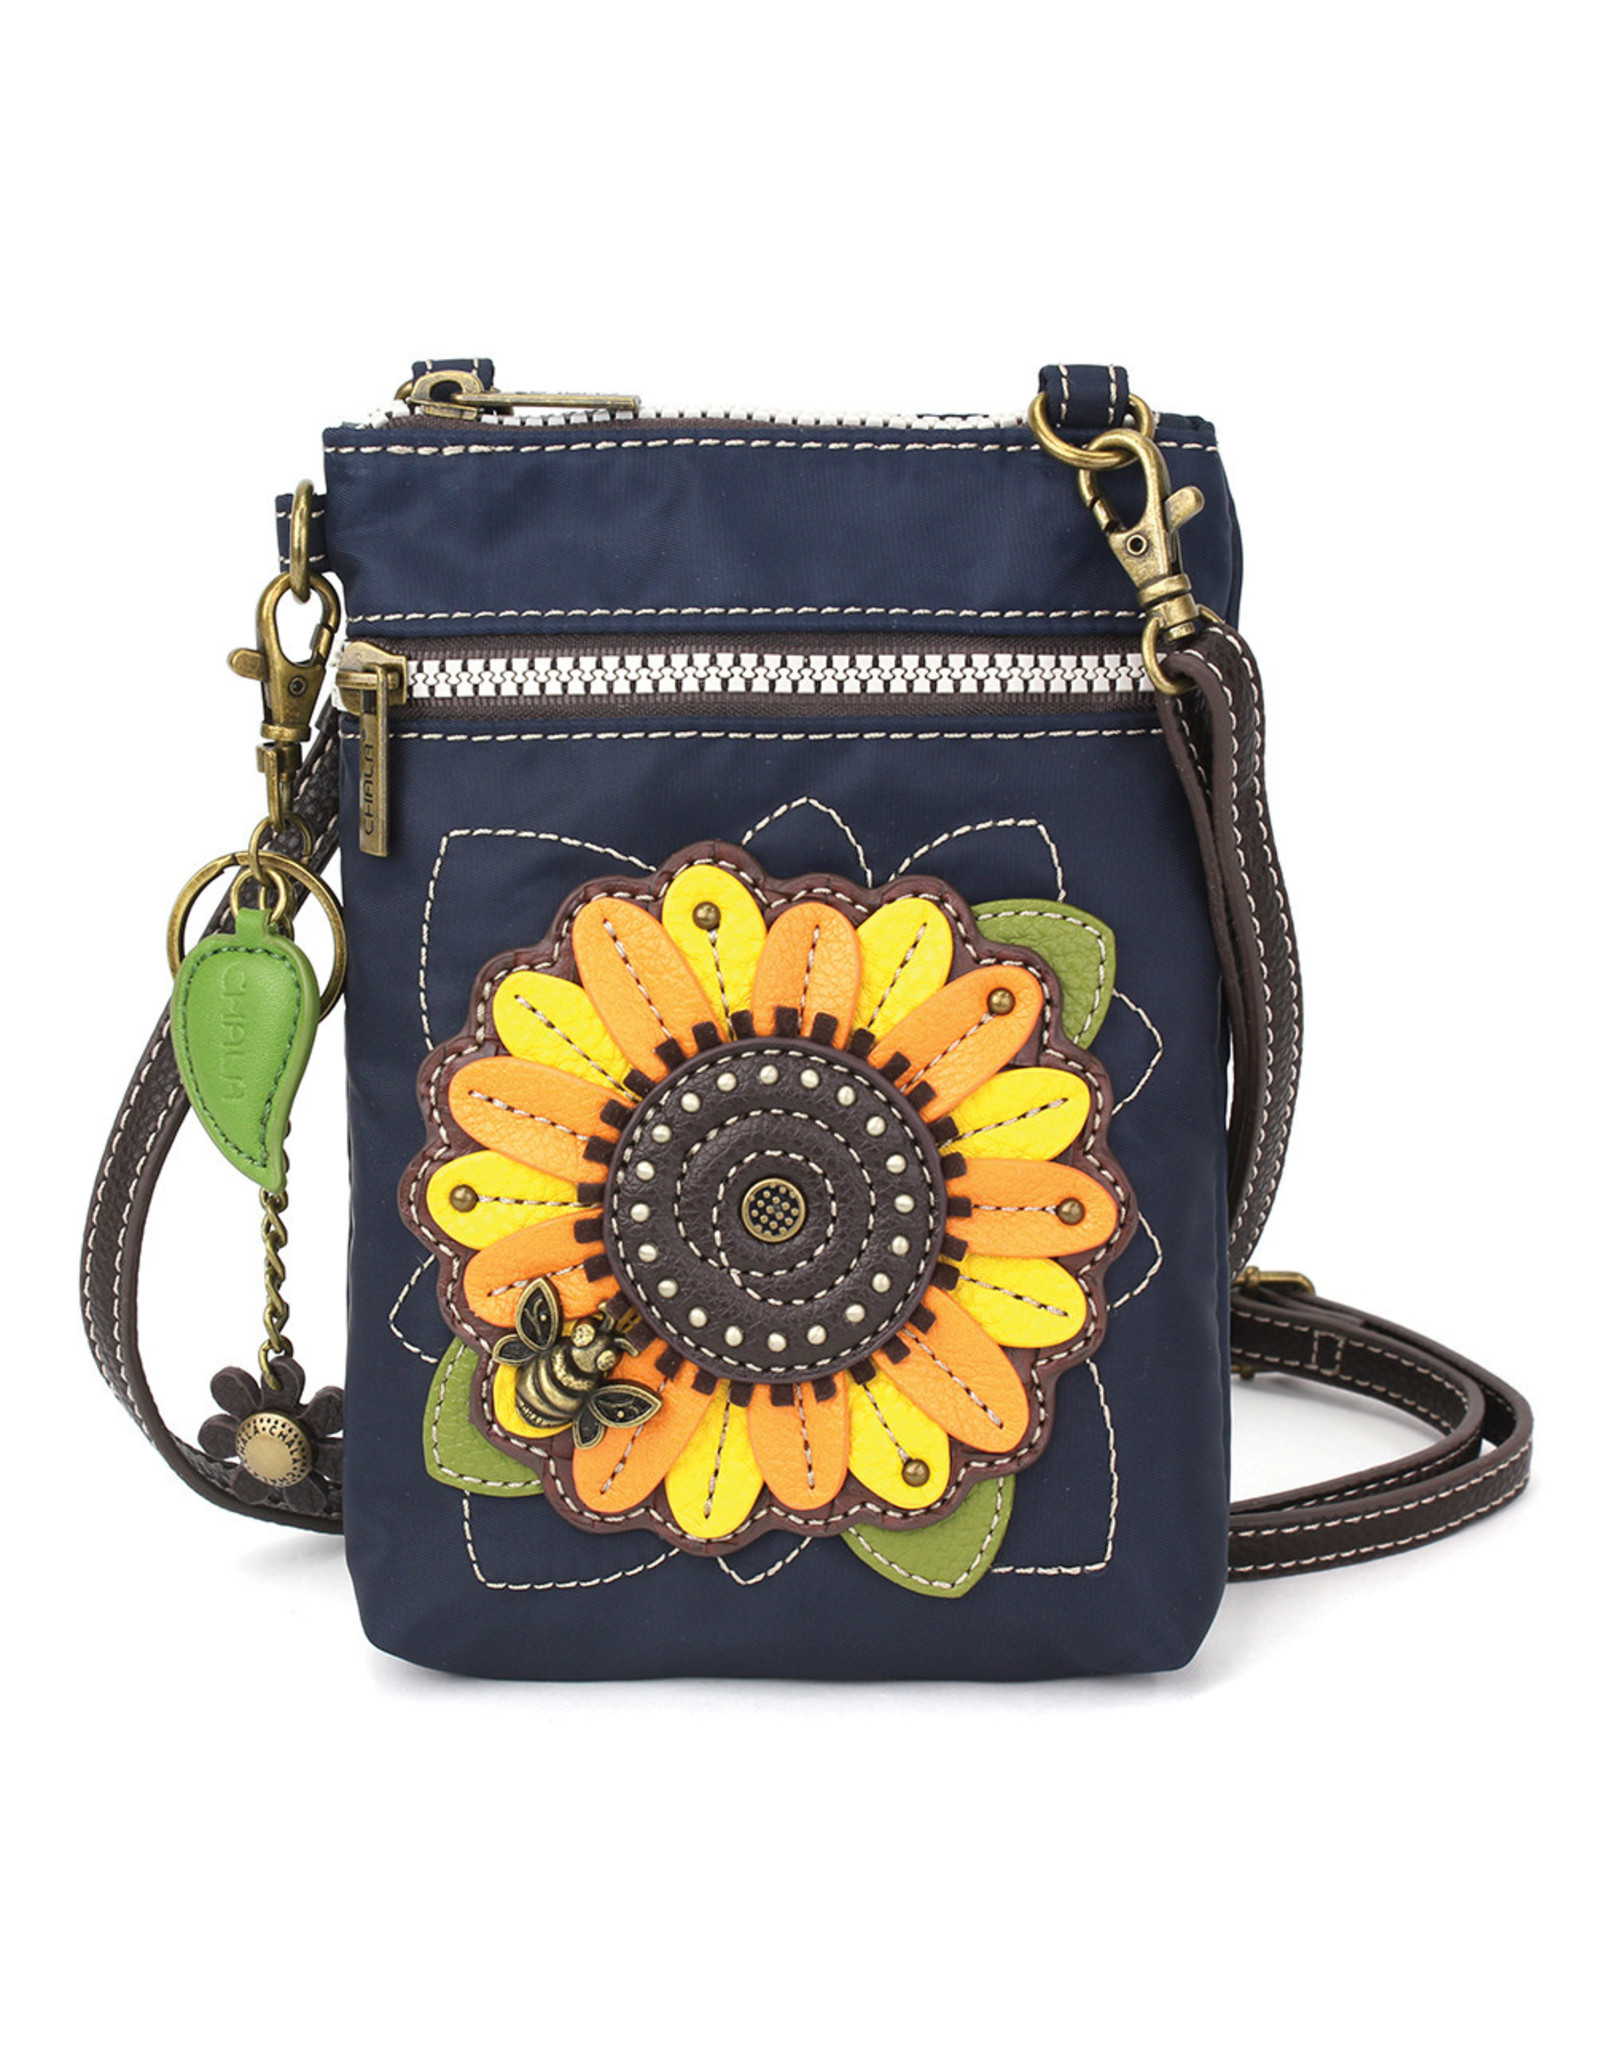 Chala Venture Cell Phone Crossbody - Sunflower - Navy